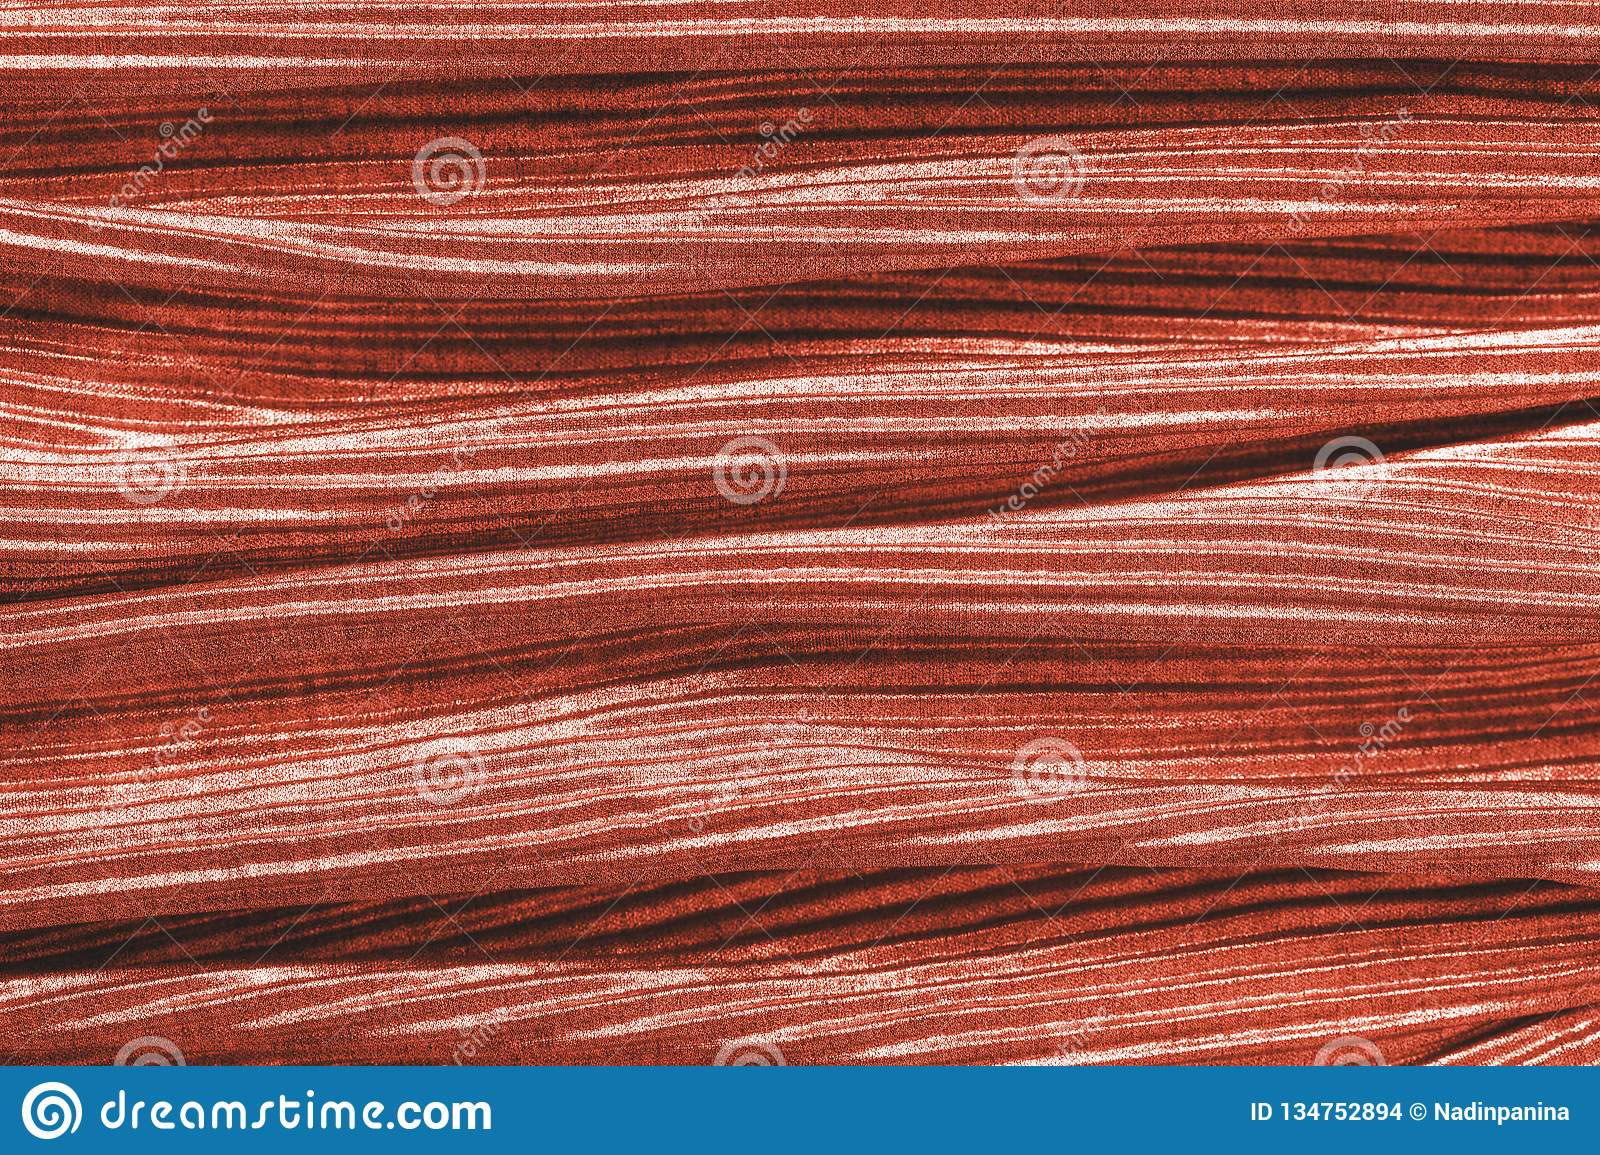 Coral colored fabric texture. Concept of color of 2019